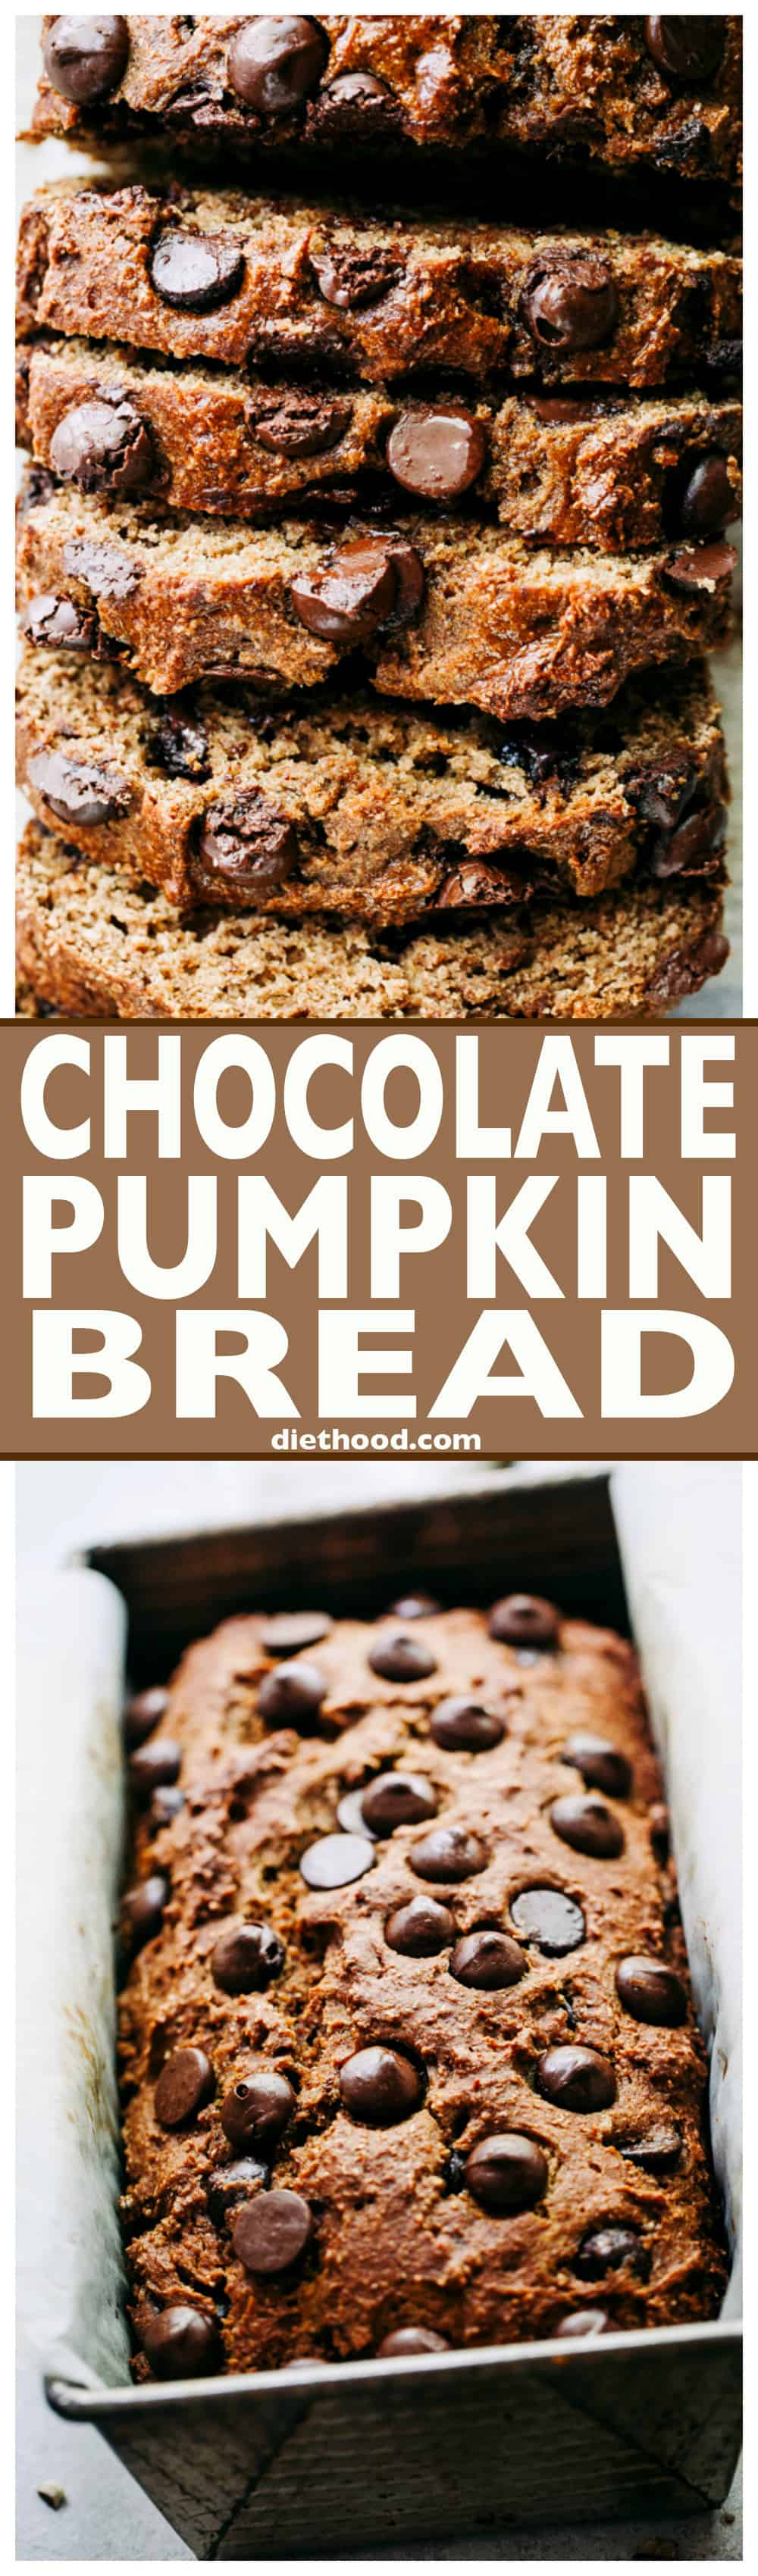 Pumpkin baking at its BEST! This easy, lightened up pumpkin bread recipeis packed with warm spices & vanilla, then dotted with dark chocolate chips. #pumpkinrecipes #pumpkin #fallbaking #thanksgiving